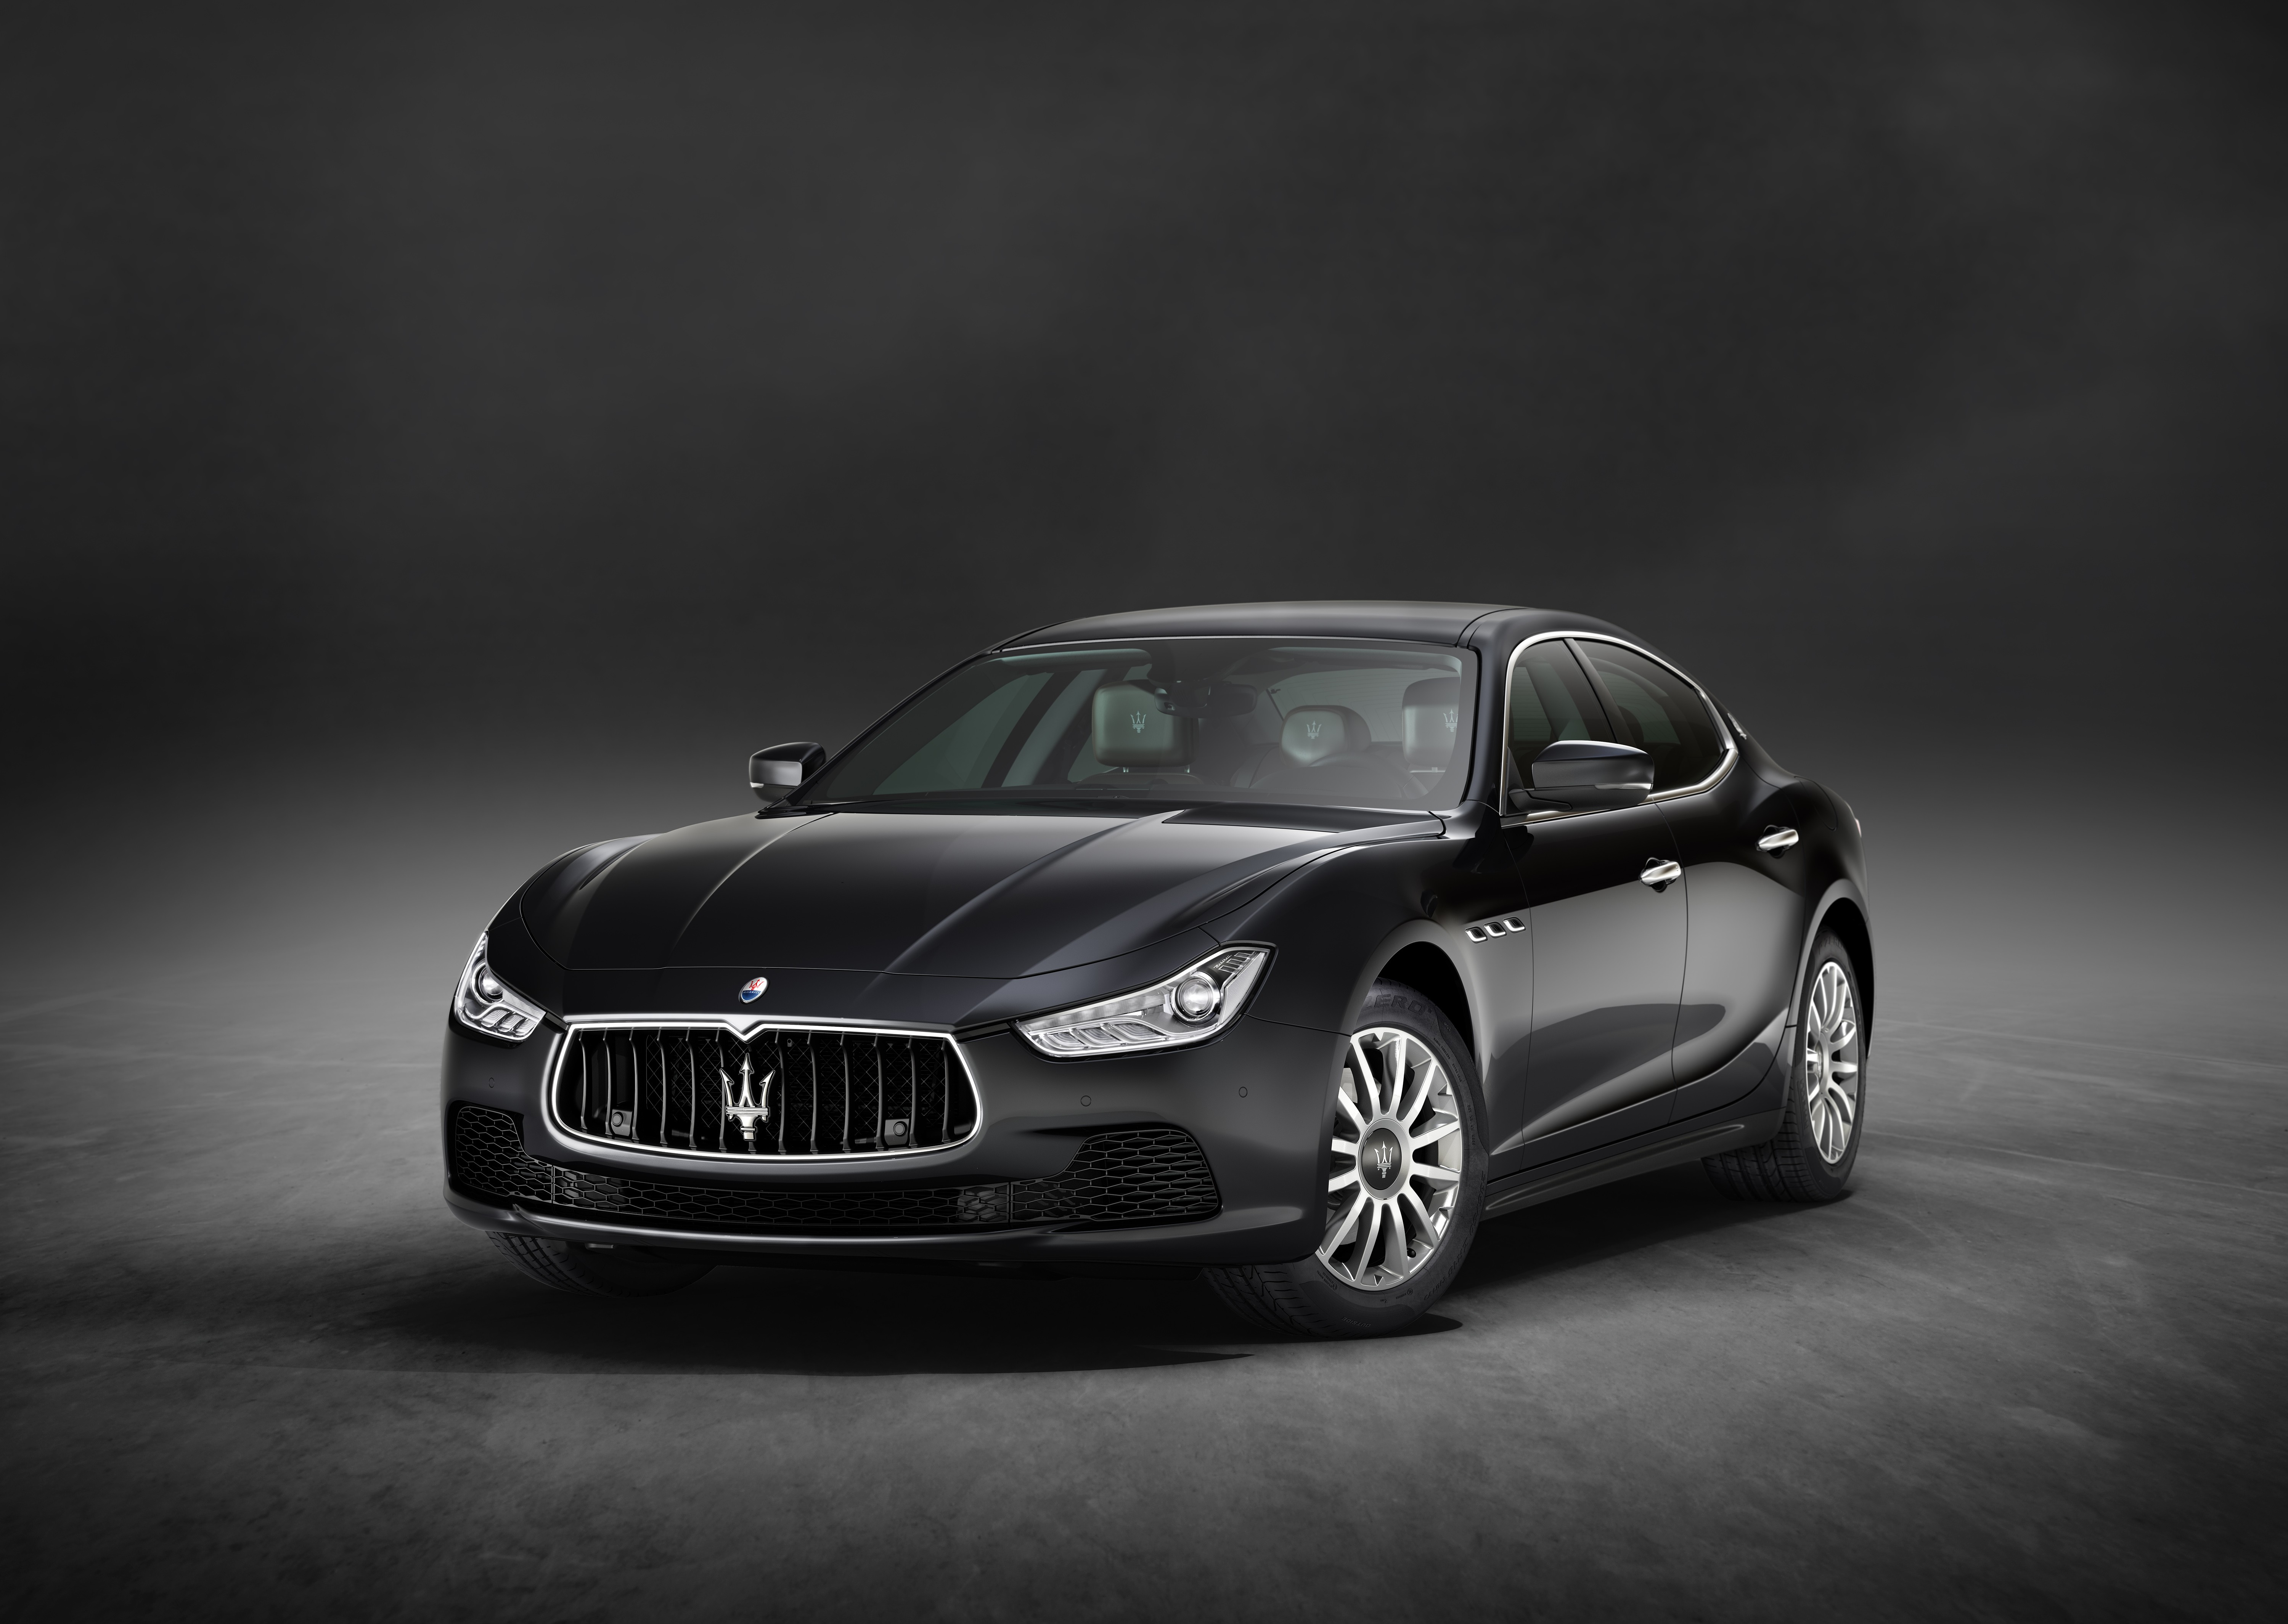 2017 Maserati Ghibli Gets More Powerful Base V6 Model, Luxury and Sport Packages  autoevolution